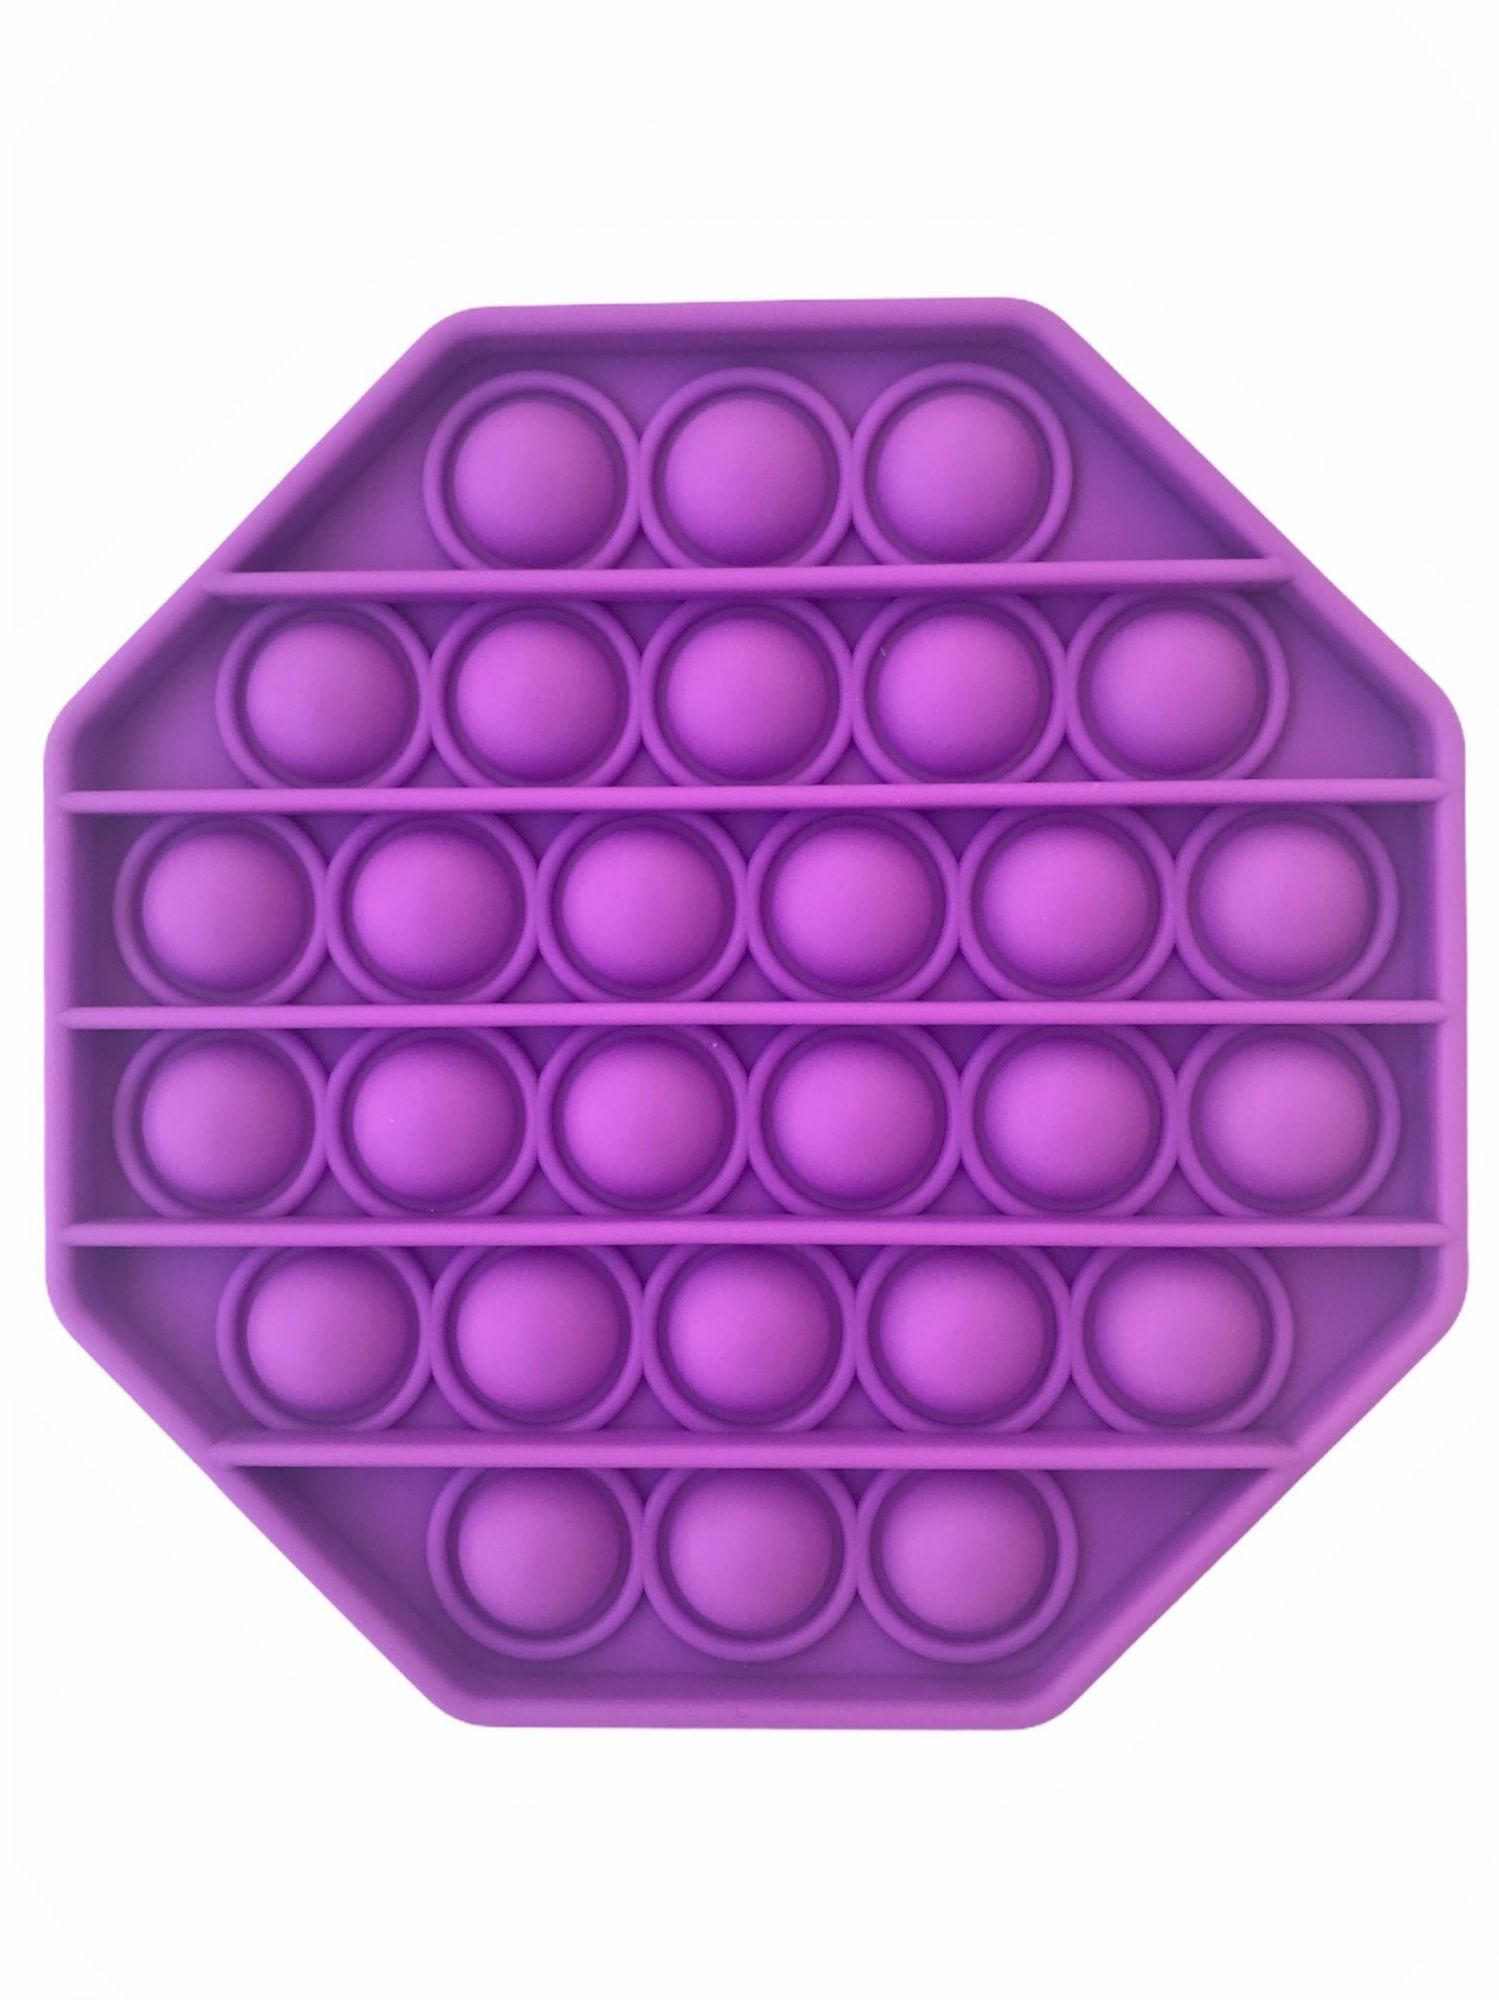 LIVYU LIFE Push pop Bubble Fidget Toy, Stress Relief and Anti-Anxiety Tools Sensory Toy for Autism to Relieve Stress for Kids and Adults (Octagonal Purple)